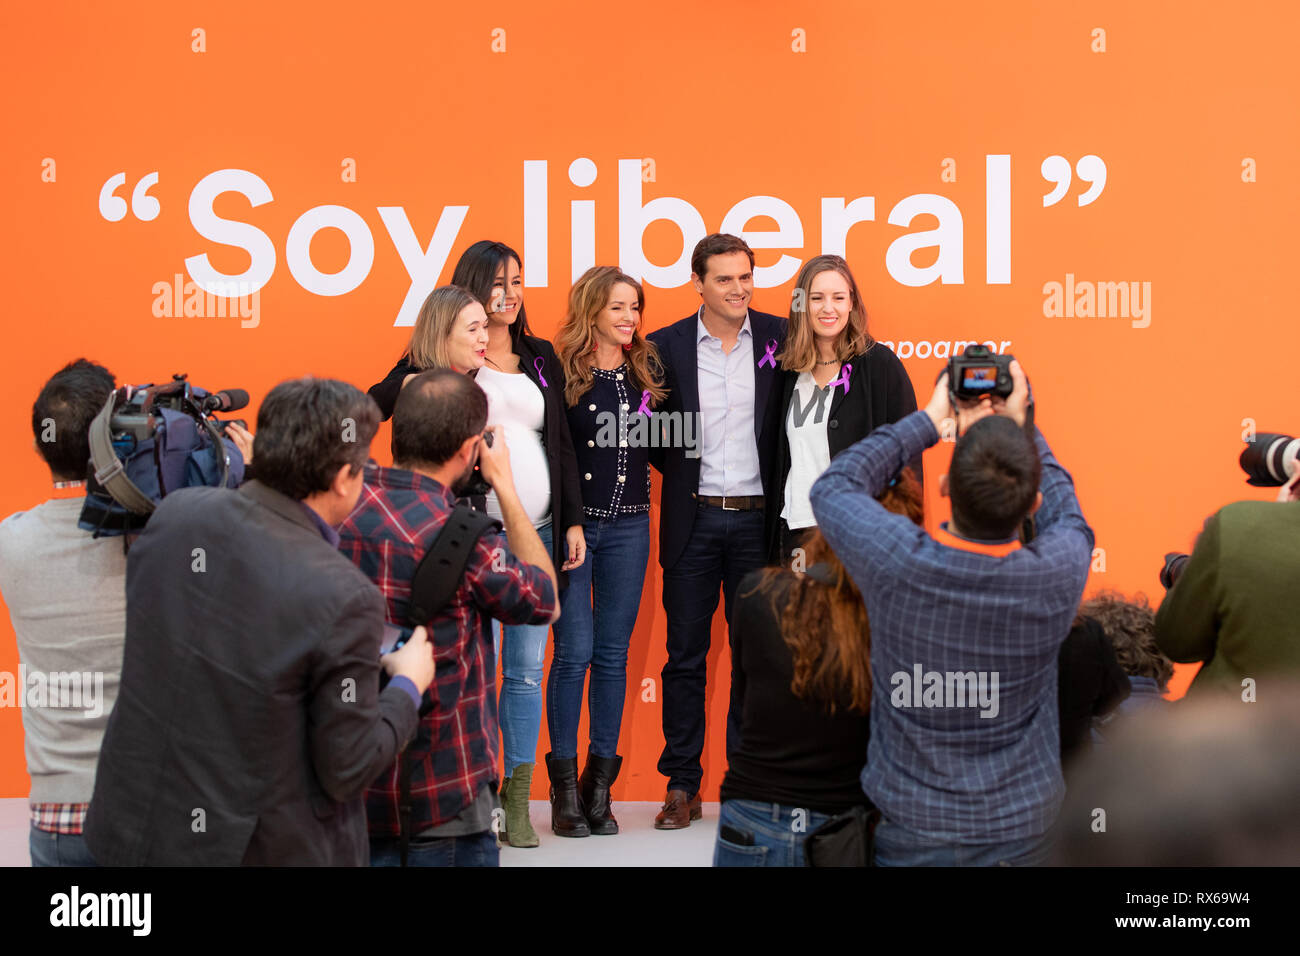 The president of Ciudadanos (Cs), Albert Rivera, accompanied by the head of the Women and LGTBI Area of ??the formation, Patricia Reyes (3L); the Secretary of Youth of Cs, Melisa Rodríguez (R); the candidate for mayor of Madrid and spokesperson for Cs Madrid, Begoña Villacís (2L); and the culture spokesperson of the party, Marta Rivera (1L) seen making an institutional declaration during Women's Day. Spain celebrates International Women's Day with a women's general strike and countless protests with events around the country. - Stock Image